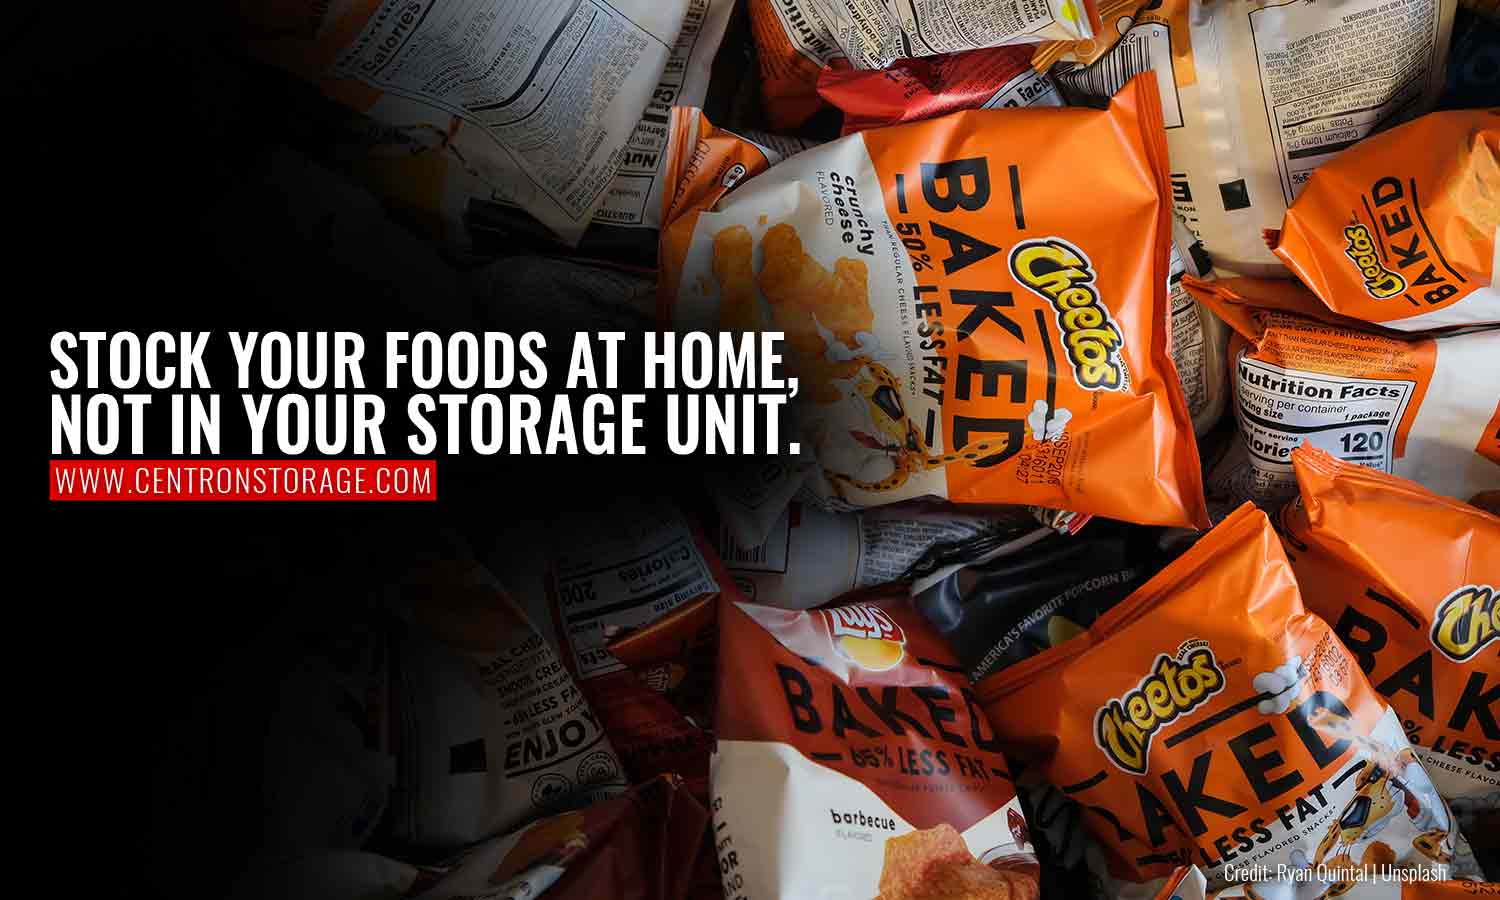 Stock your foods at home, not in your storage unit.